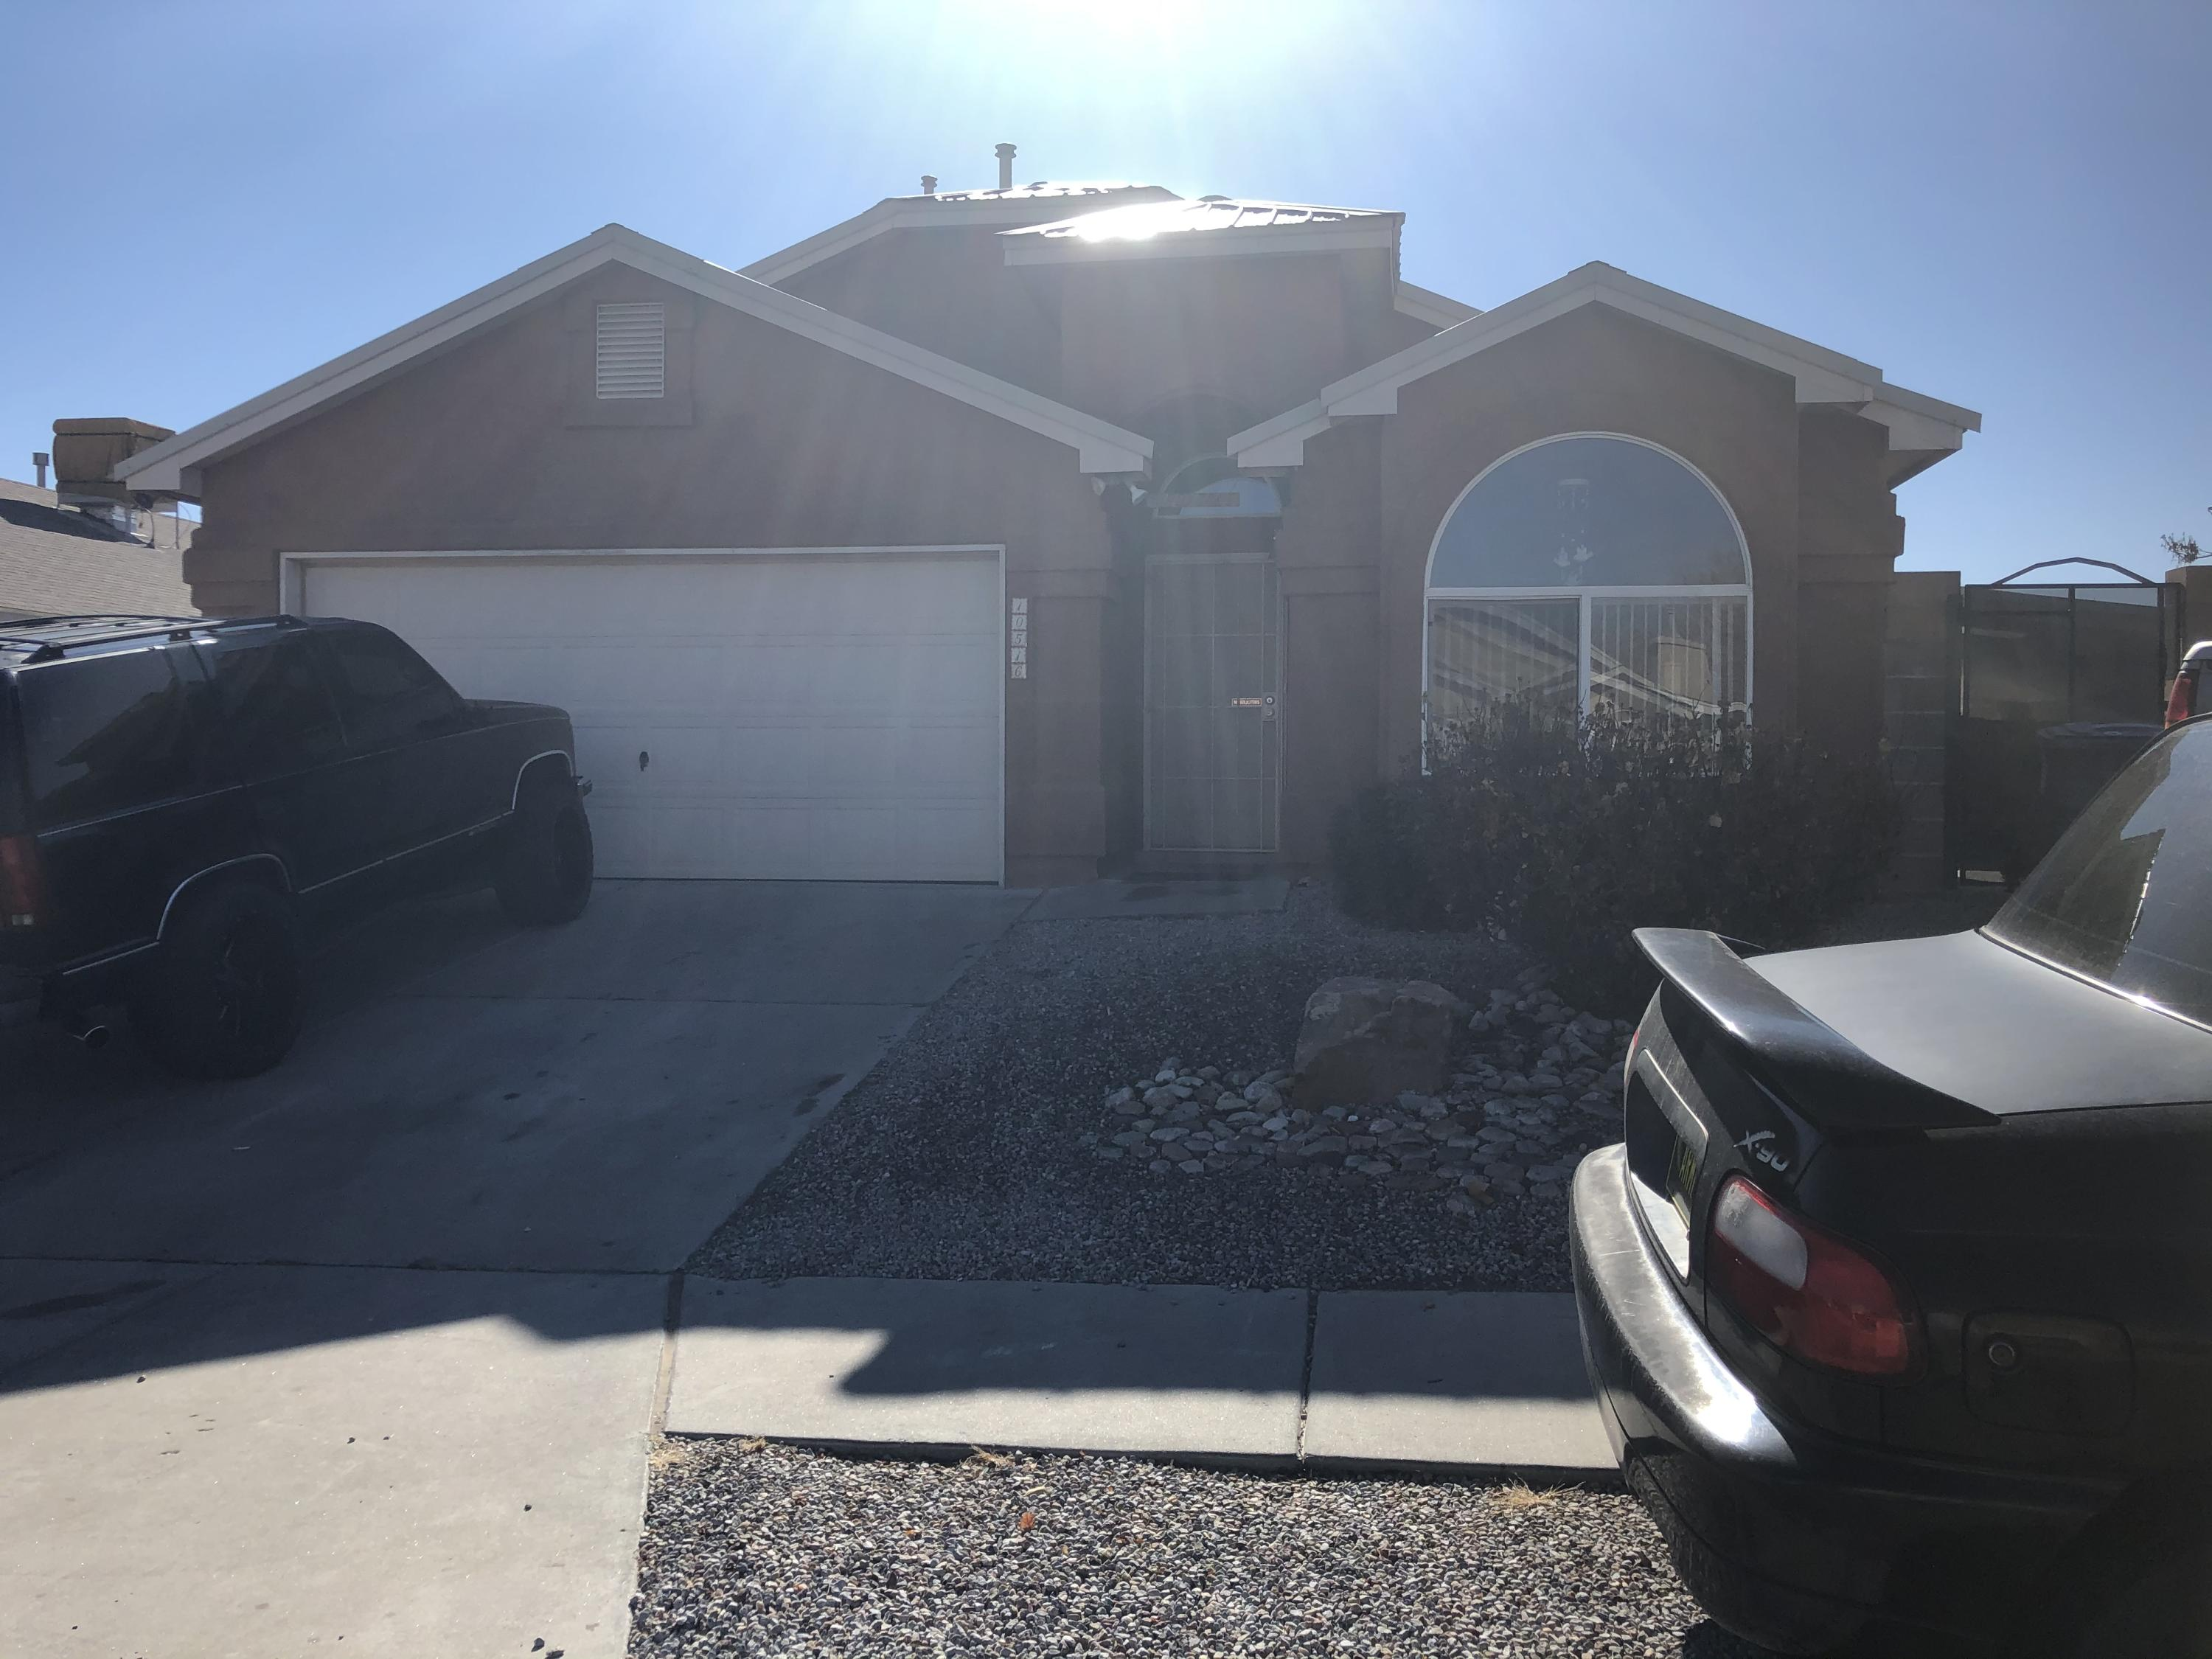 Beautiful 4br with custom tile, large covered patio with a bar.  Cathedral ceilings, kitchen island and an open floor plan.  Also this home features a block wall with backyard access.  It's a really great private yard with a gas grill and a sink under the covered patio. Shed does not convey.